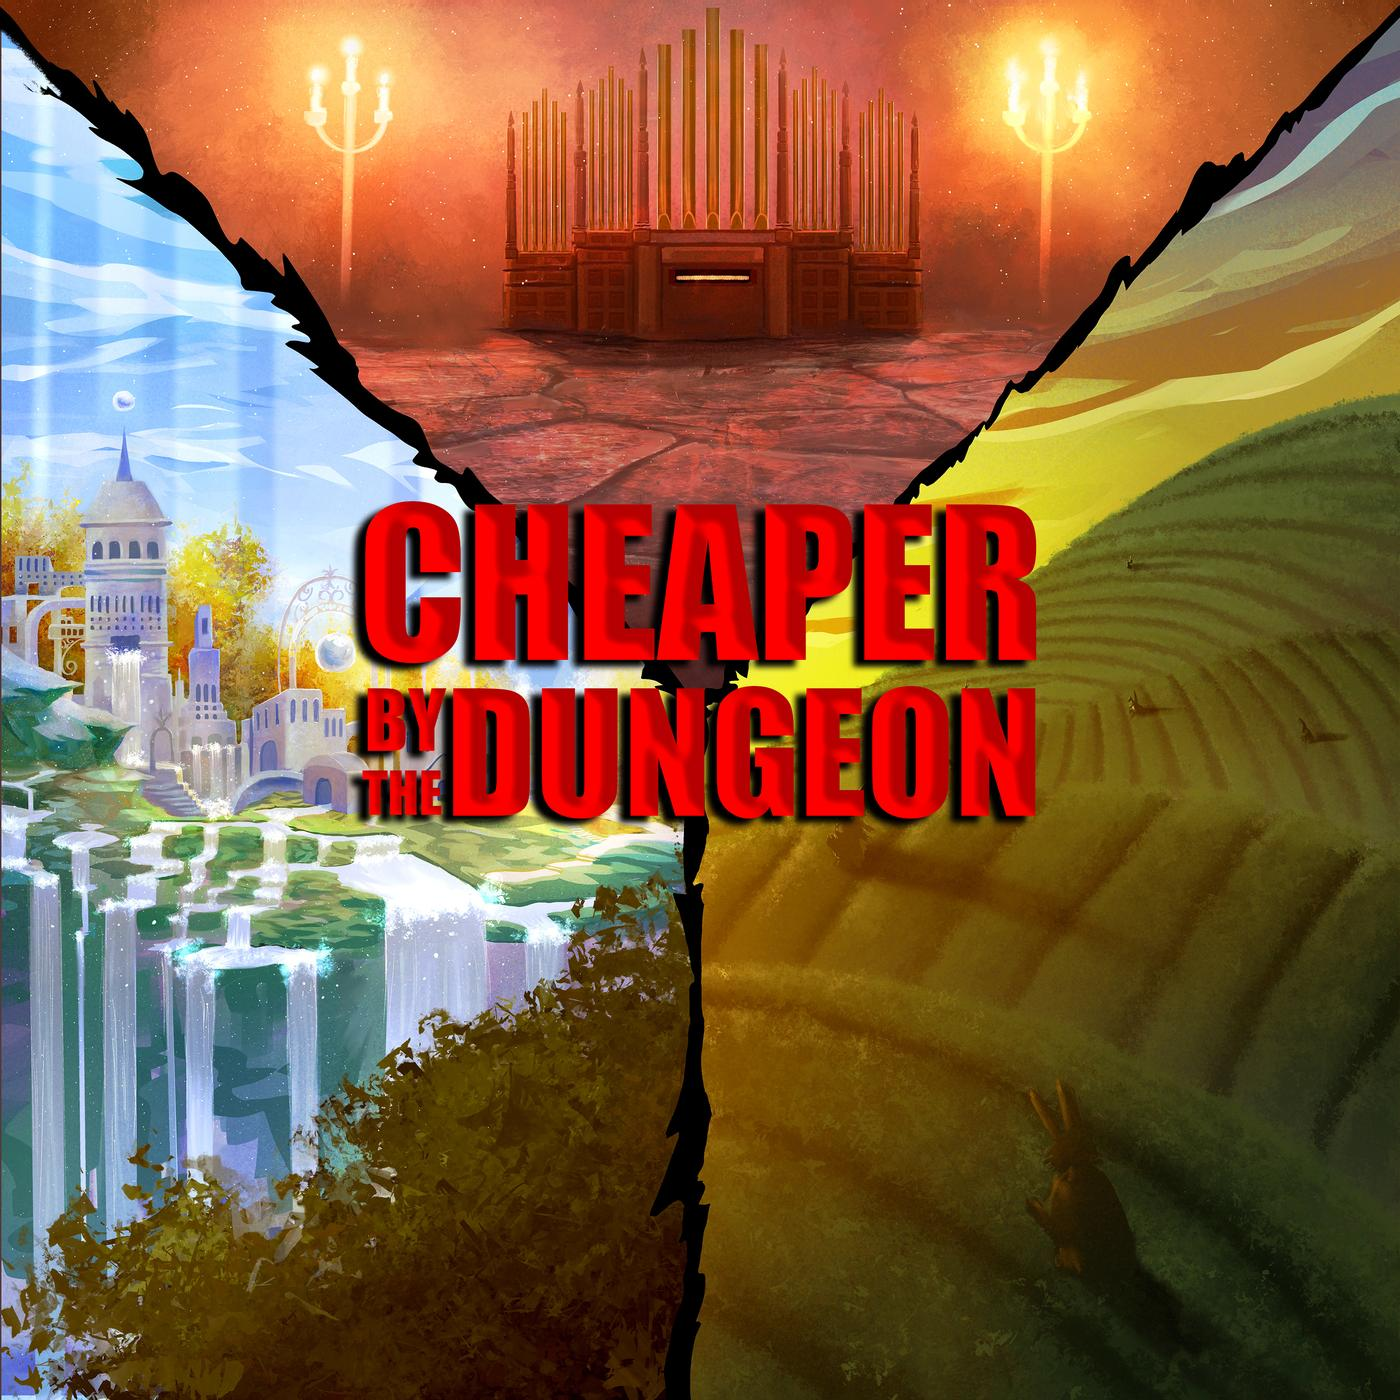 Cheaper by the Dungeon (podcast) - Cheaper By The Dungeon Podcast